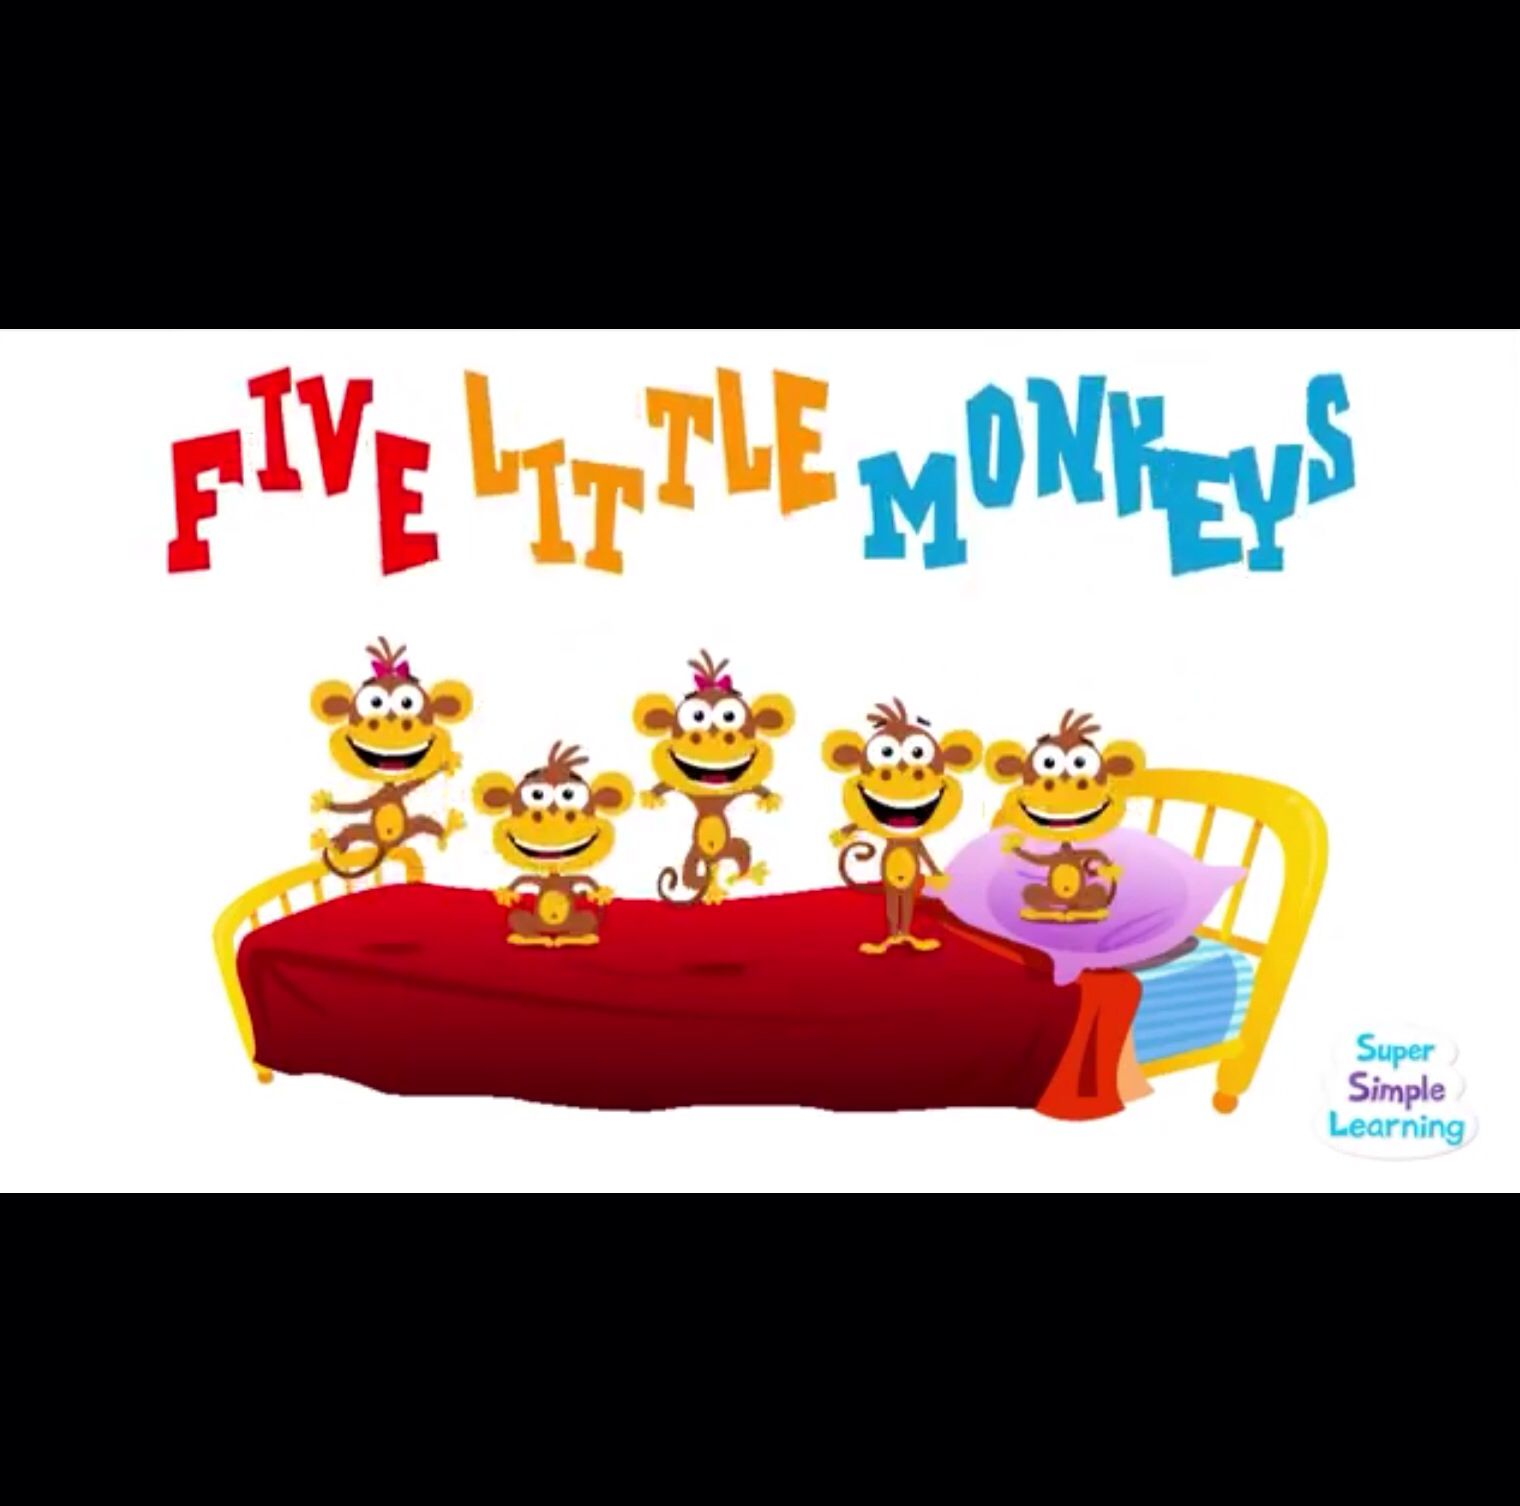 Five Little Monkeys From Super Simple Songs Great Repetitive Story For M B H And